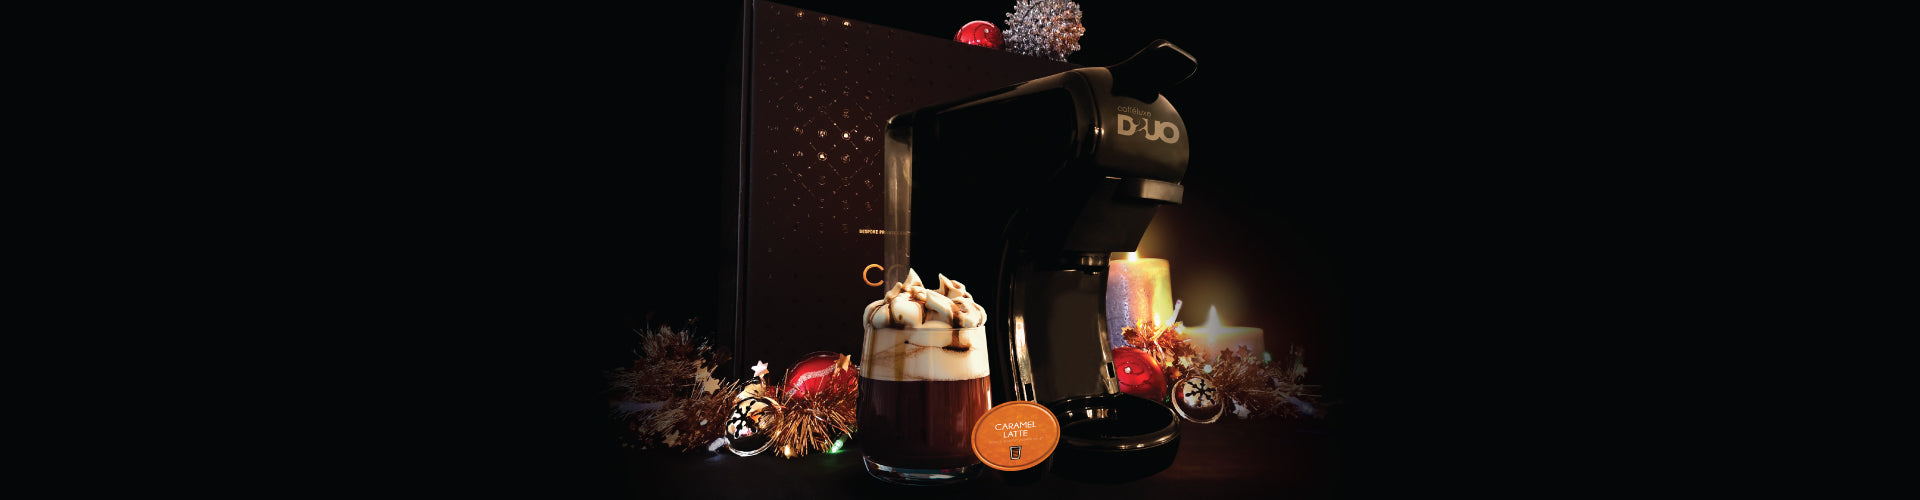 Cafféluxe DUO Coffee Machine